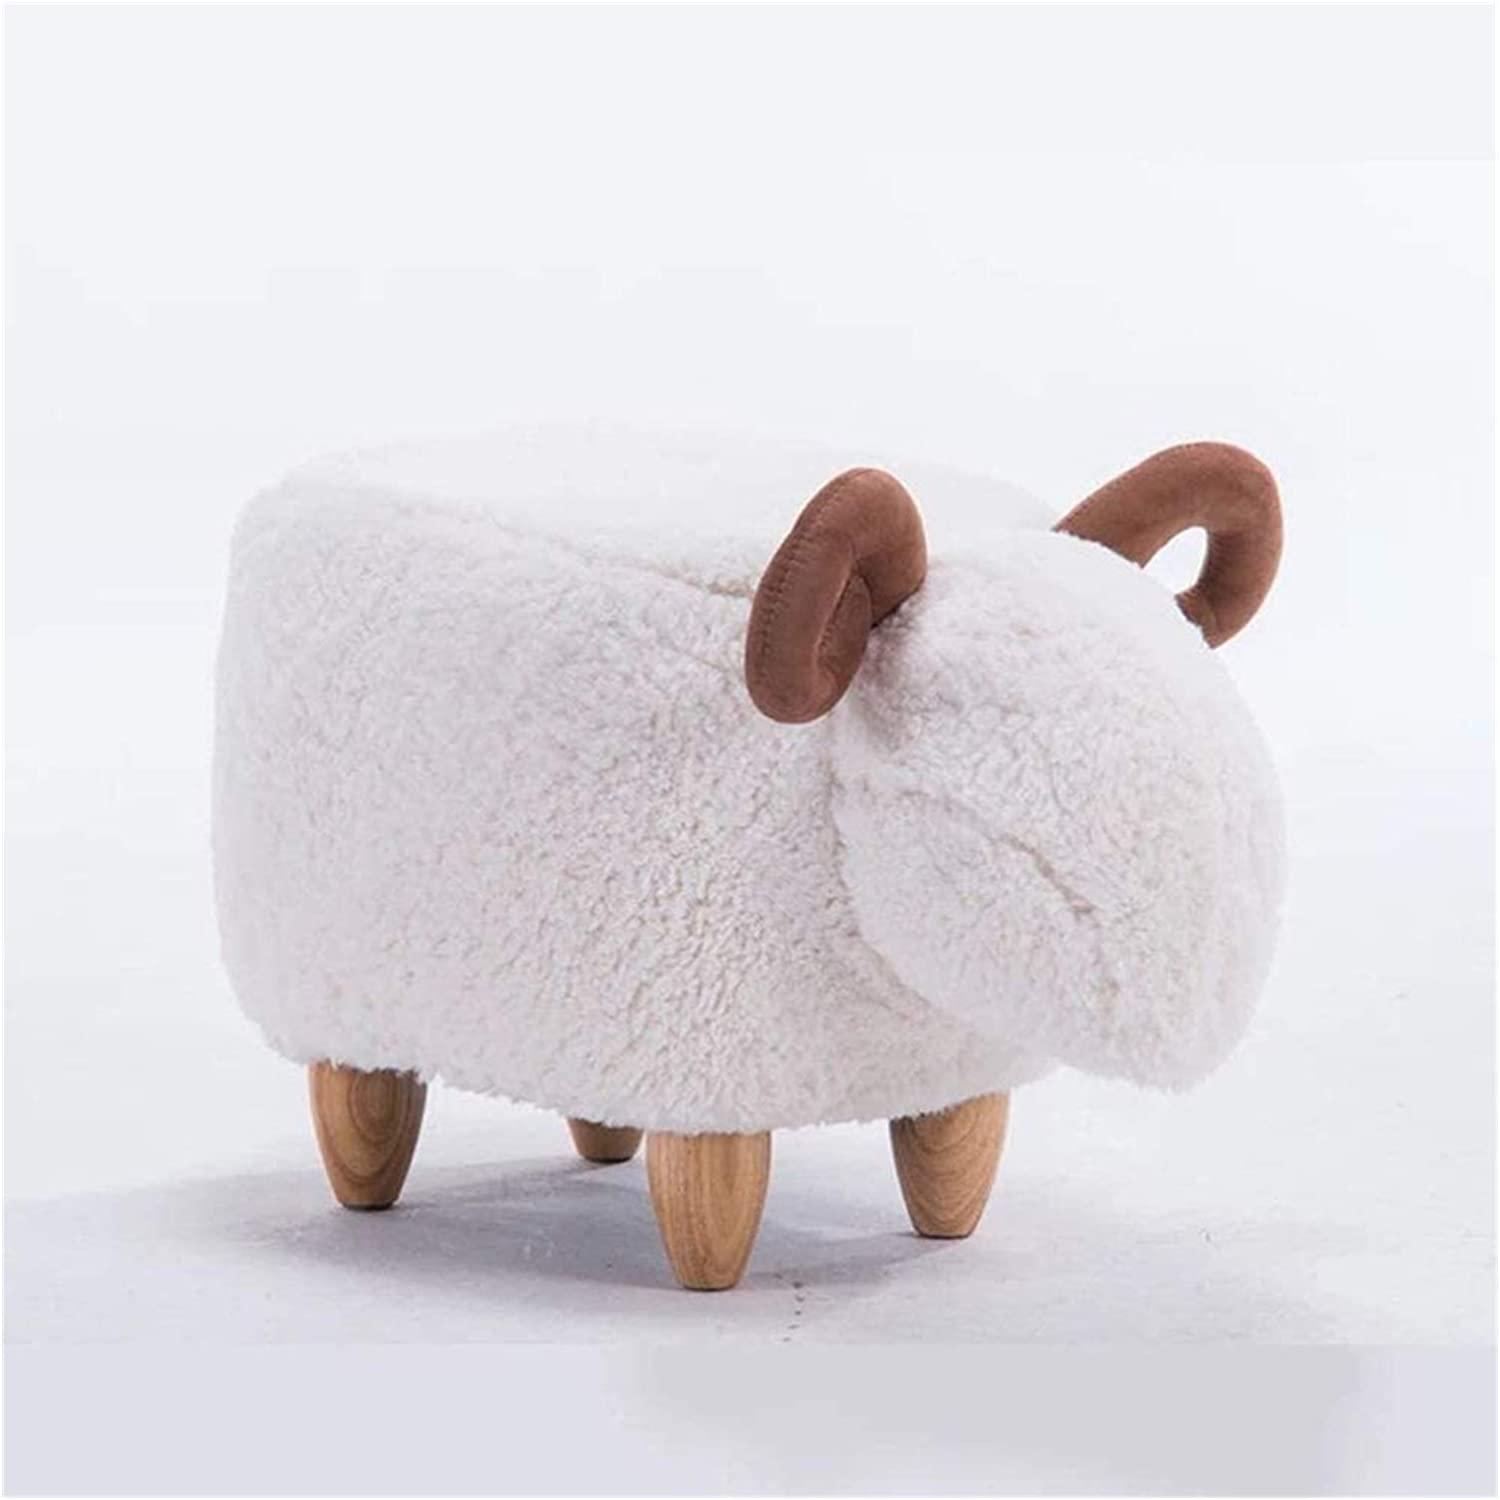 XGLX Modern Wooden Great interest Animal Footstool Kids Bench Sales of SALE items from new works Ott Creative Shoe